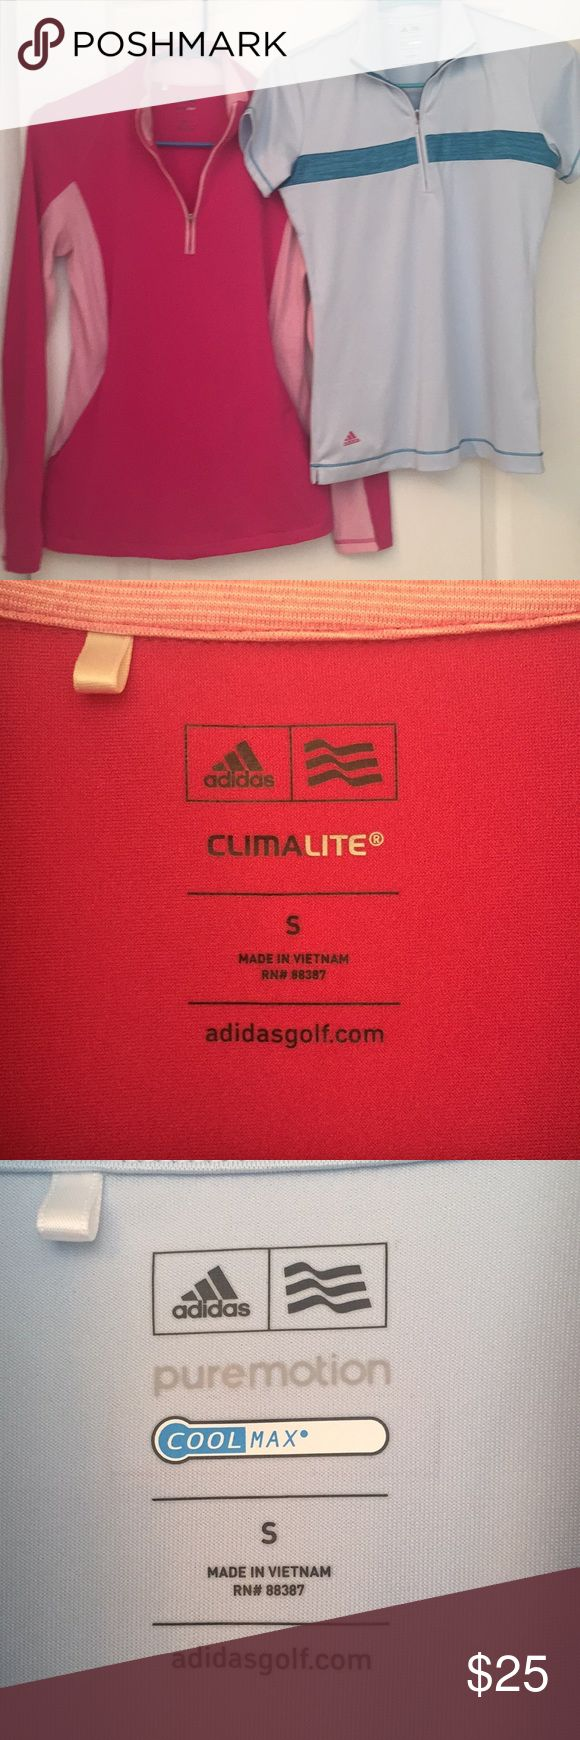 🏌🏻♀️Women's Adidas Top Bundle 💕Comfy and casual Pink/White pullover (ClimaLite)with 2 front zip pockets💕Turquoise/Baby Blue/Pink accented zip front (pure motion/coolmax) adidasgolf Polo shirt😂Great together or worn separately! Extremely comfortable! Great condition, only worn a few times💕 adidas Tops Sweatshirts & Hoodies